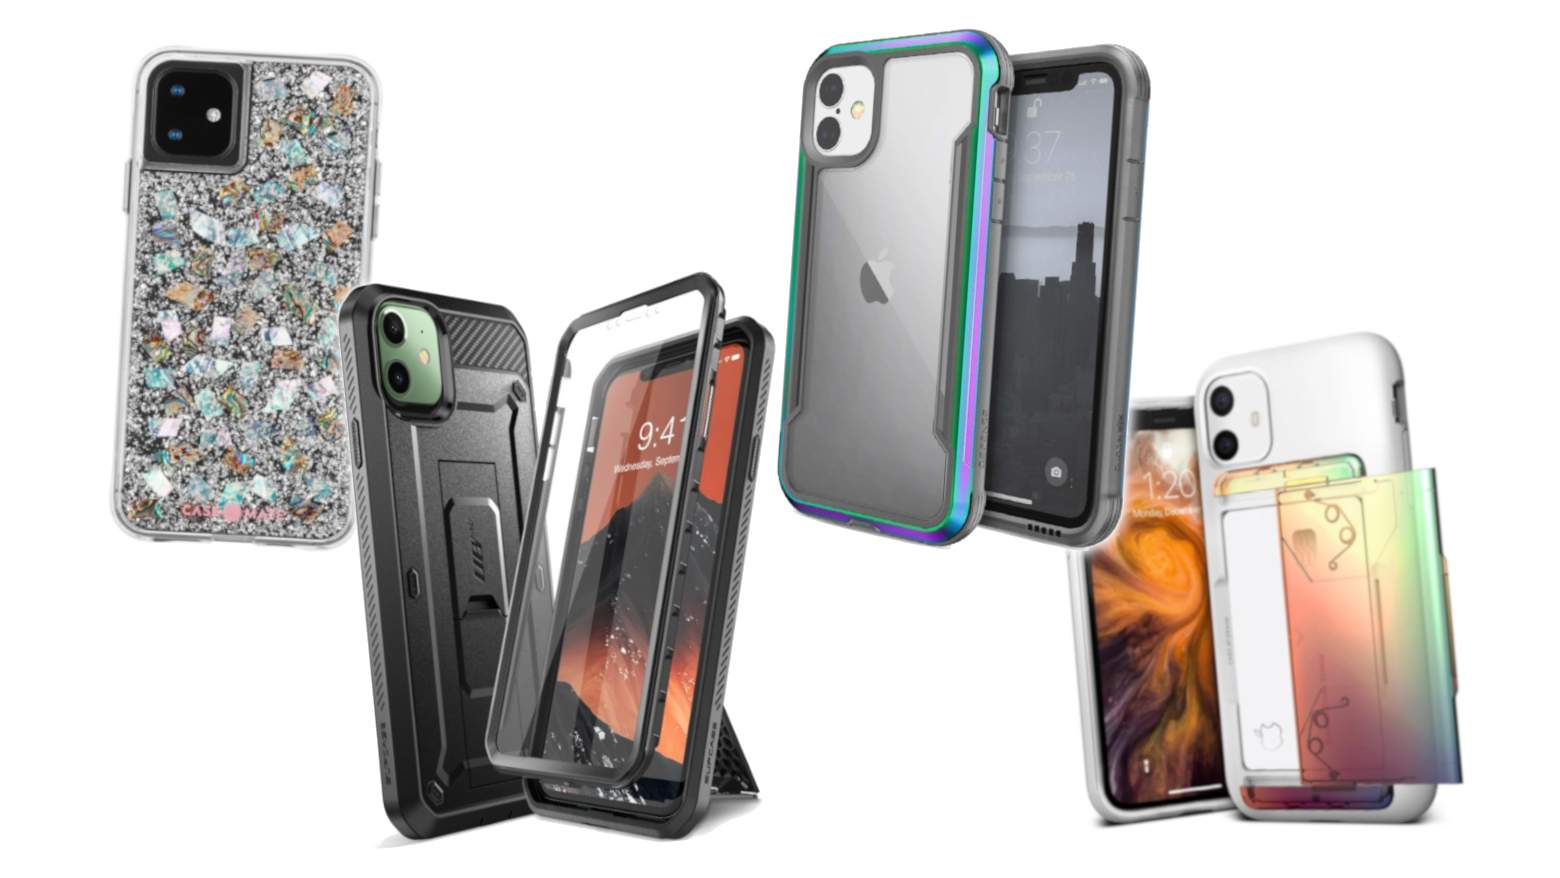 otterbox iphone 7 how to remove case - Cover Gadget